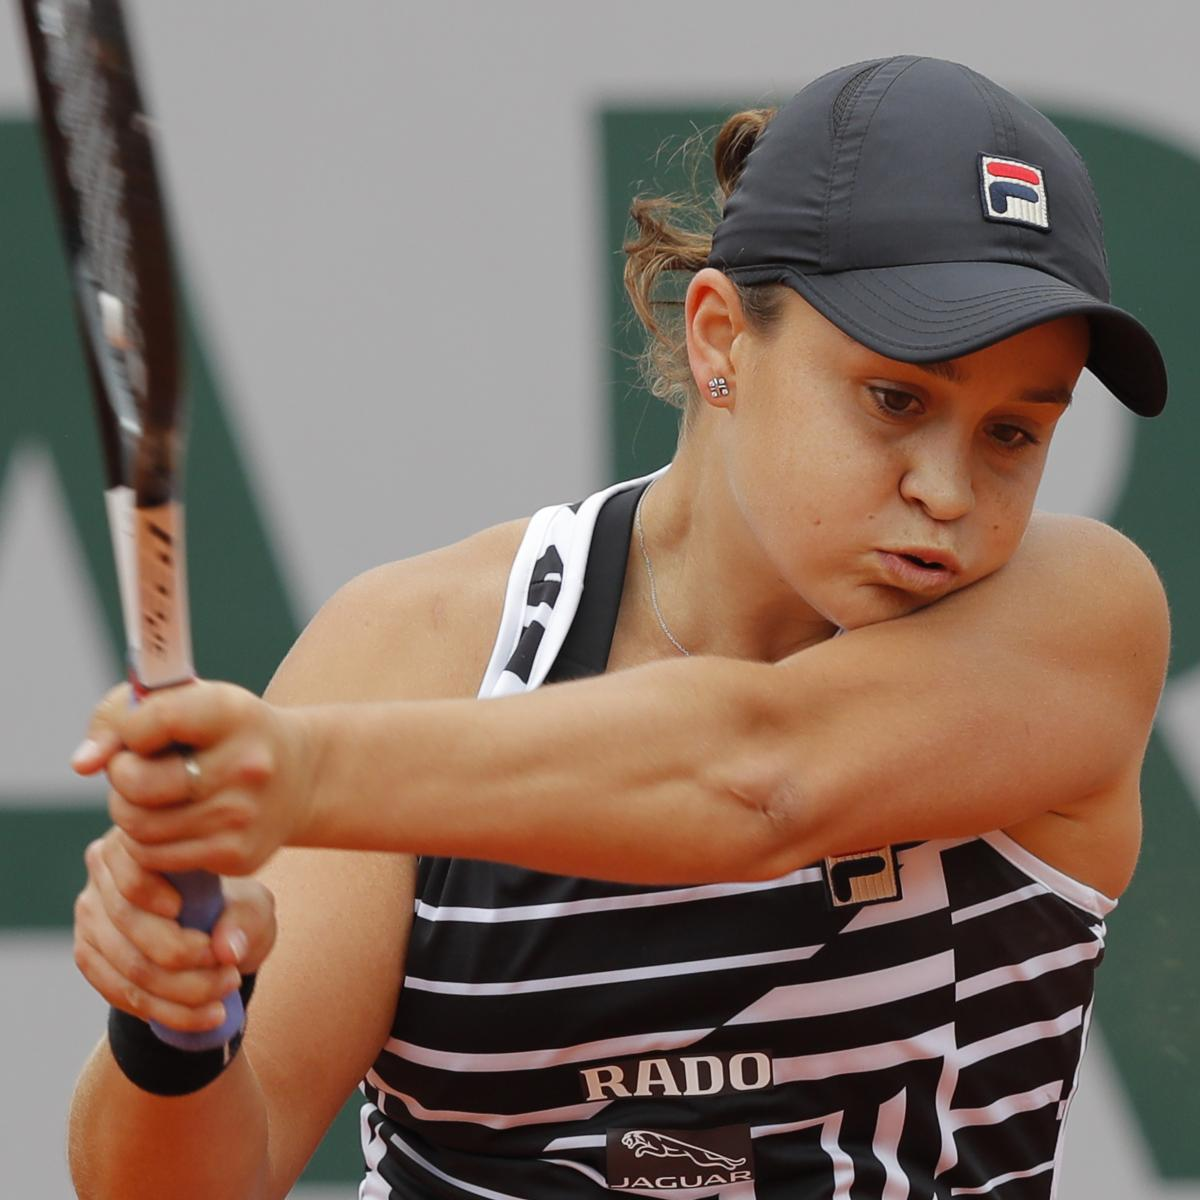 French Open 2019: Women's Final Schedule, Prediction And